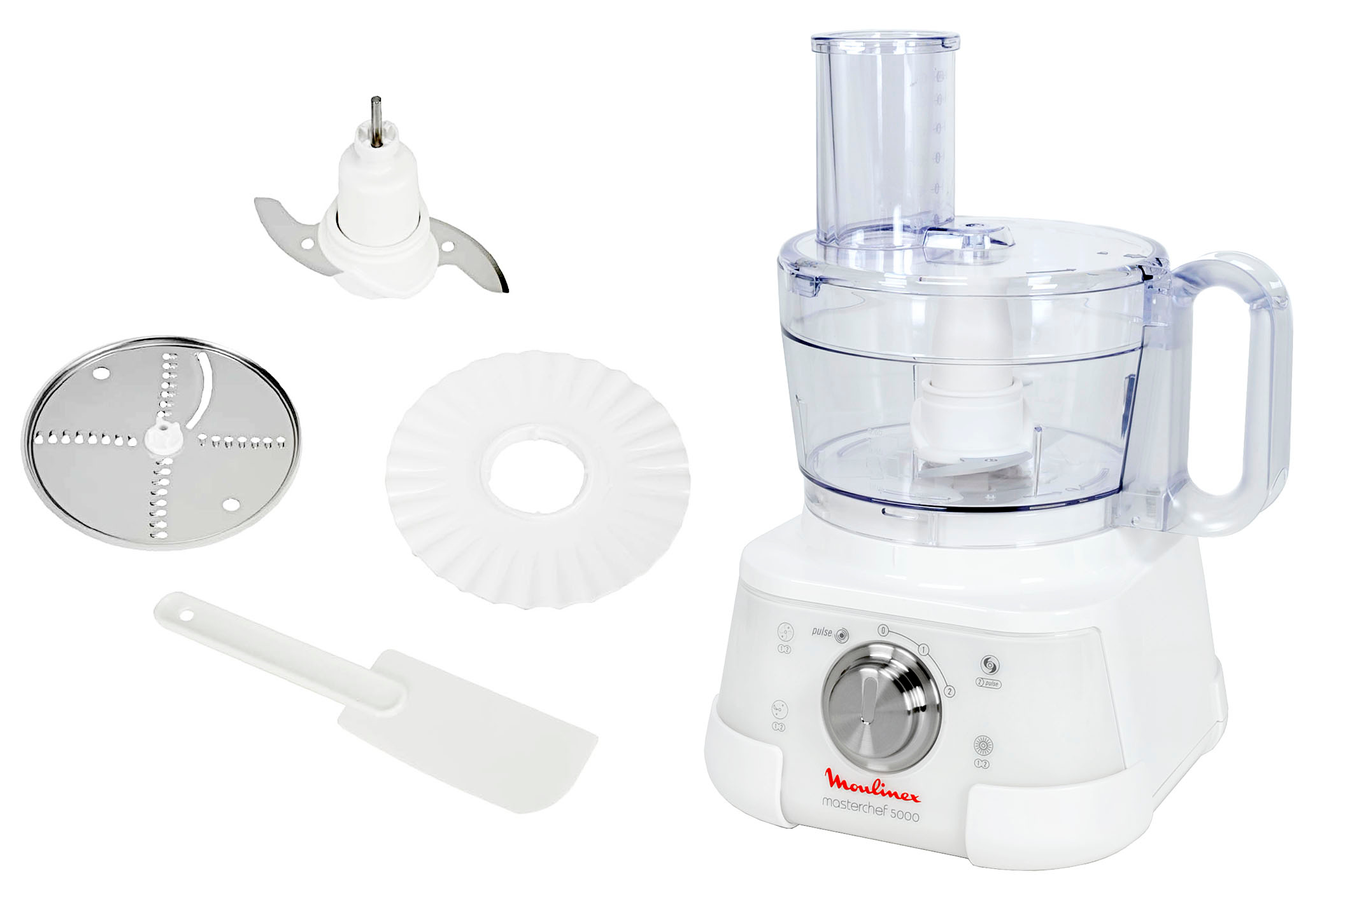 Cuisine Robot Multifonction Robot Multifonction Moulinex Masterchef 5000 Blanc Pearly